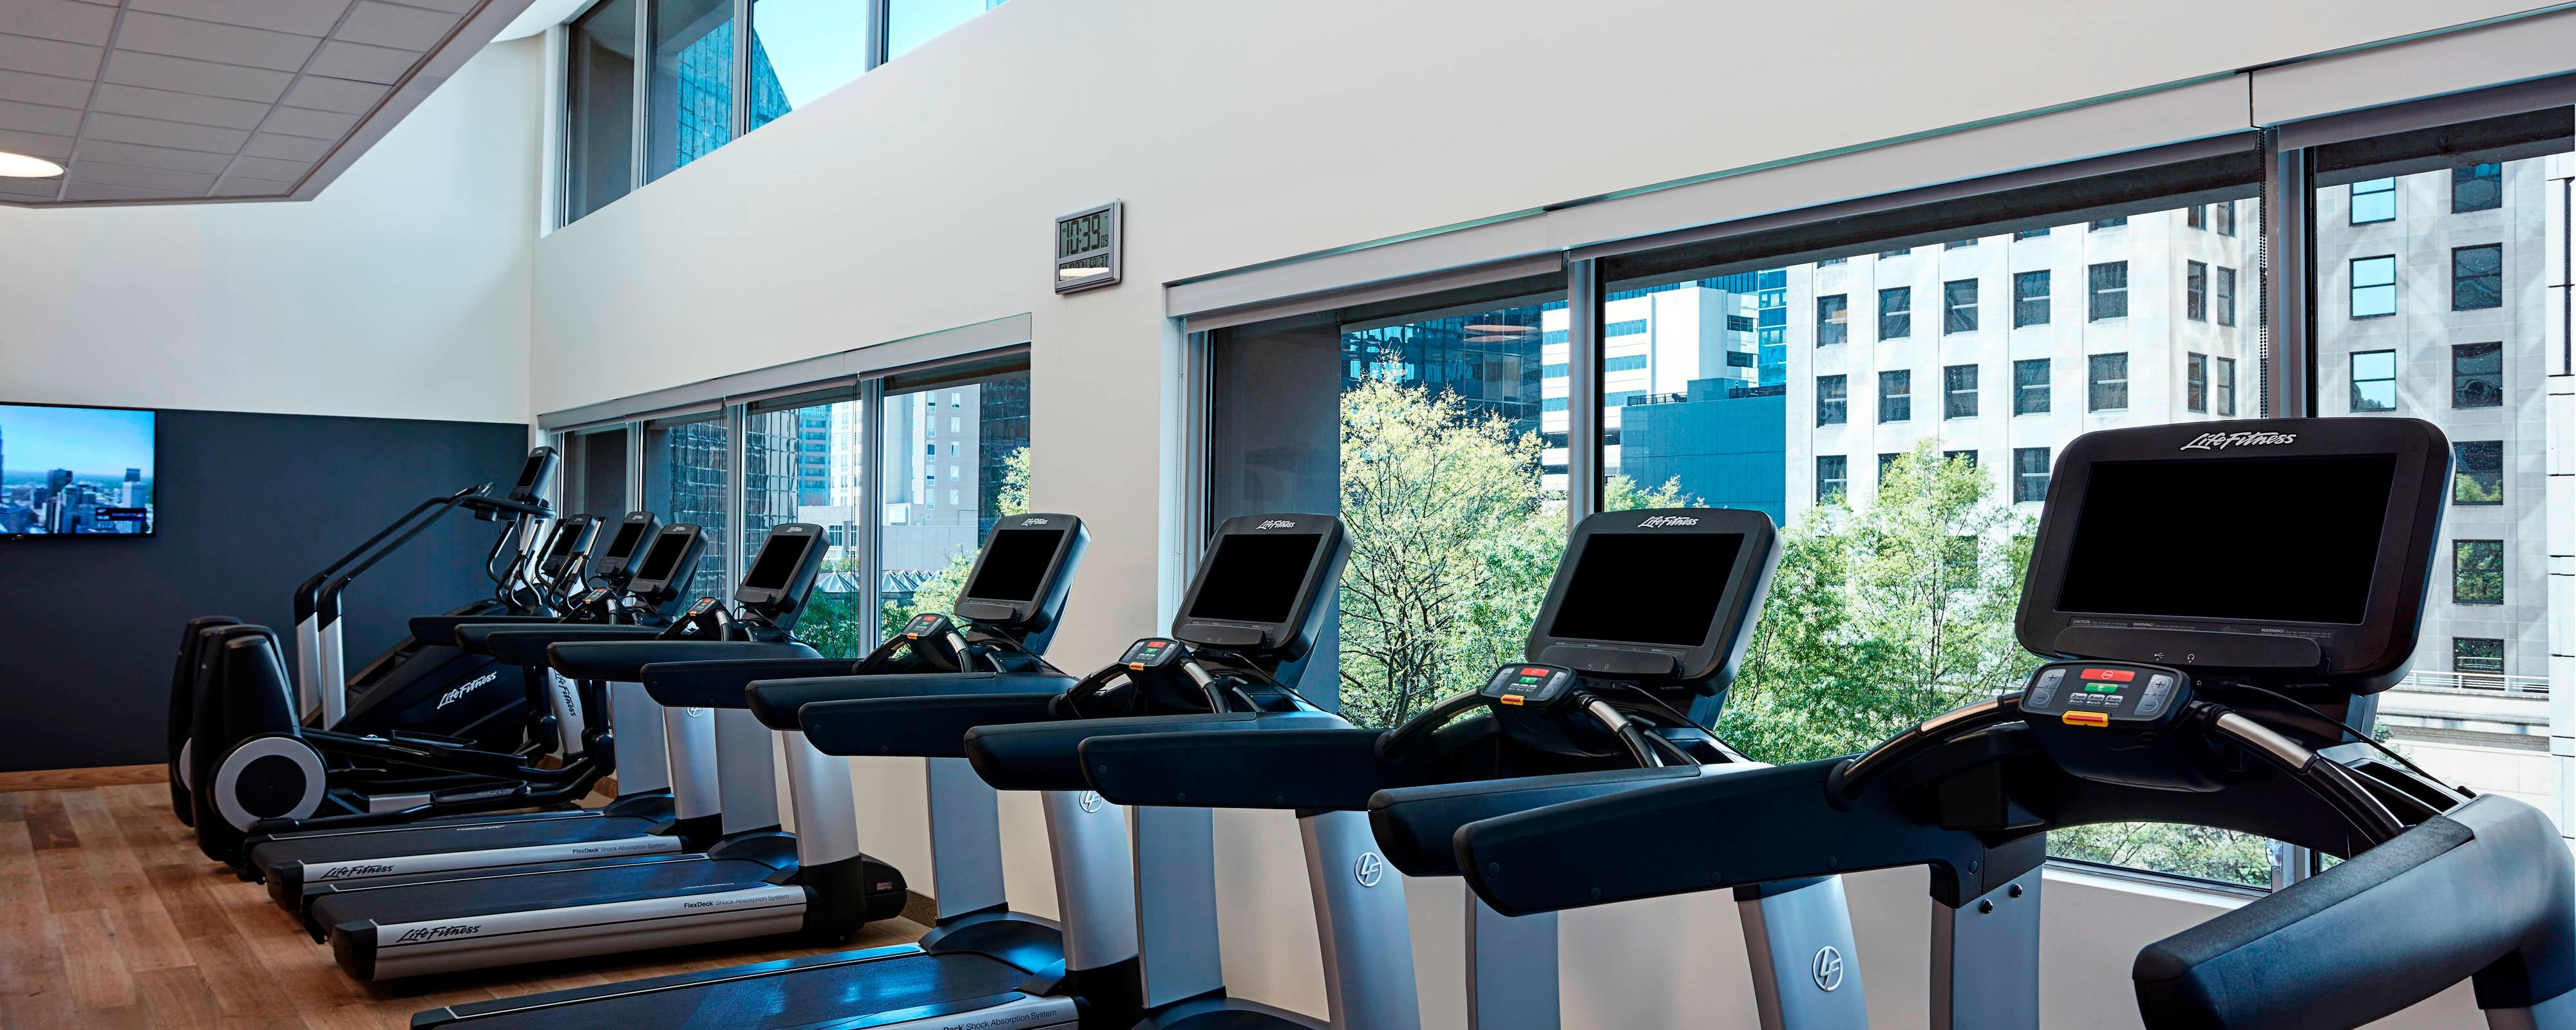 Charlotte hotel with gym charlotte marriott city center